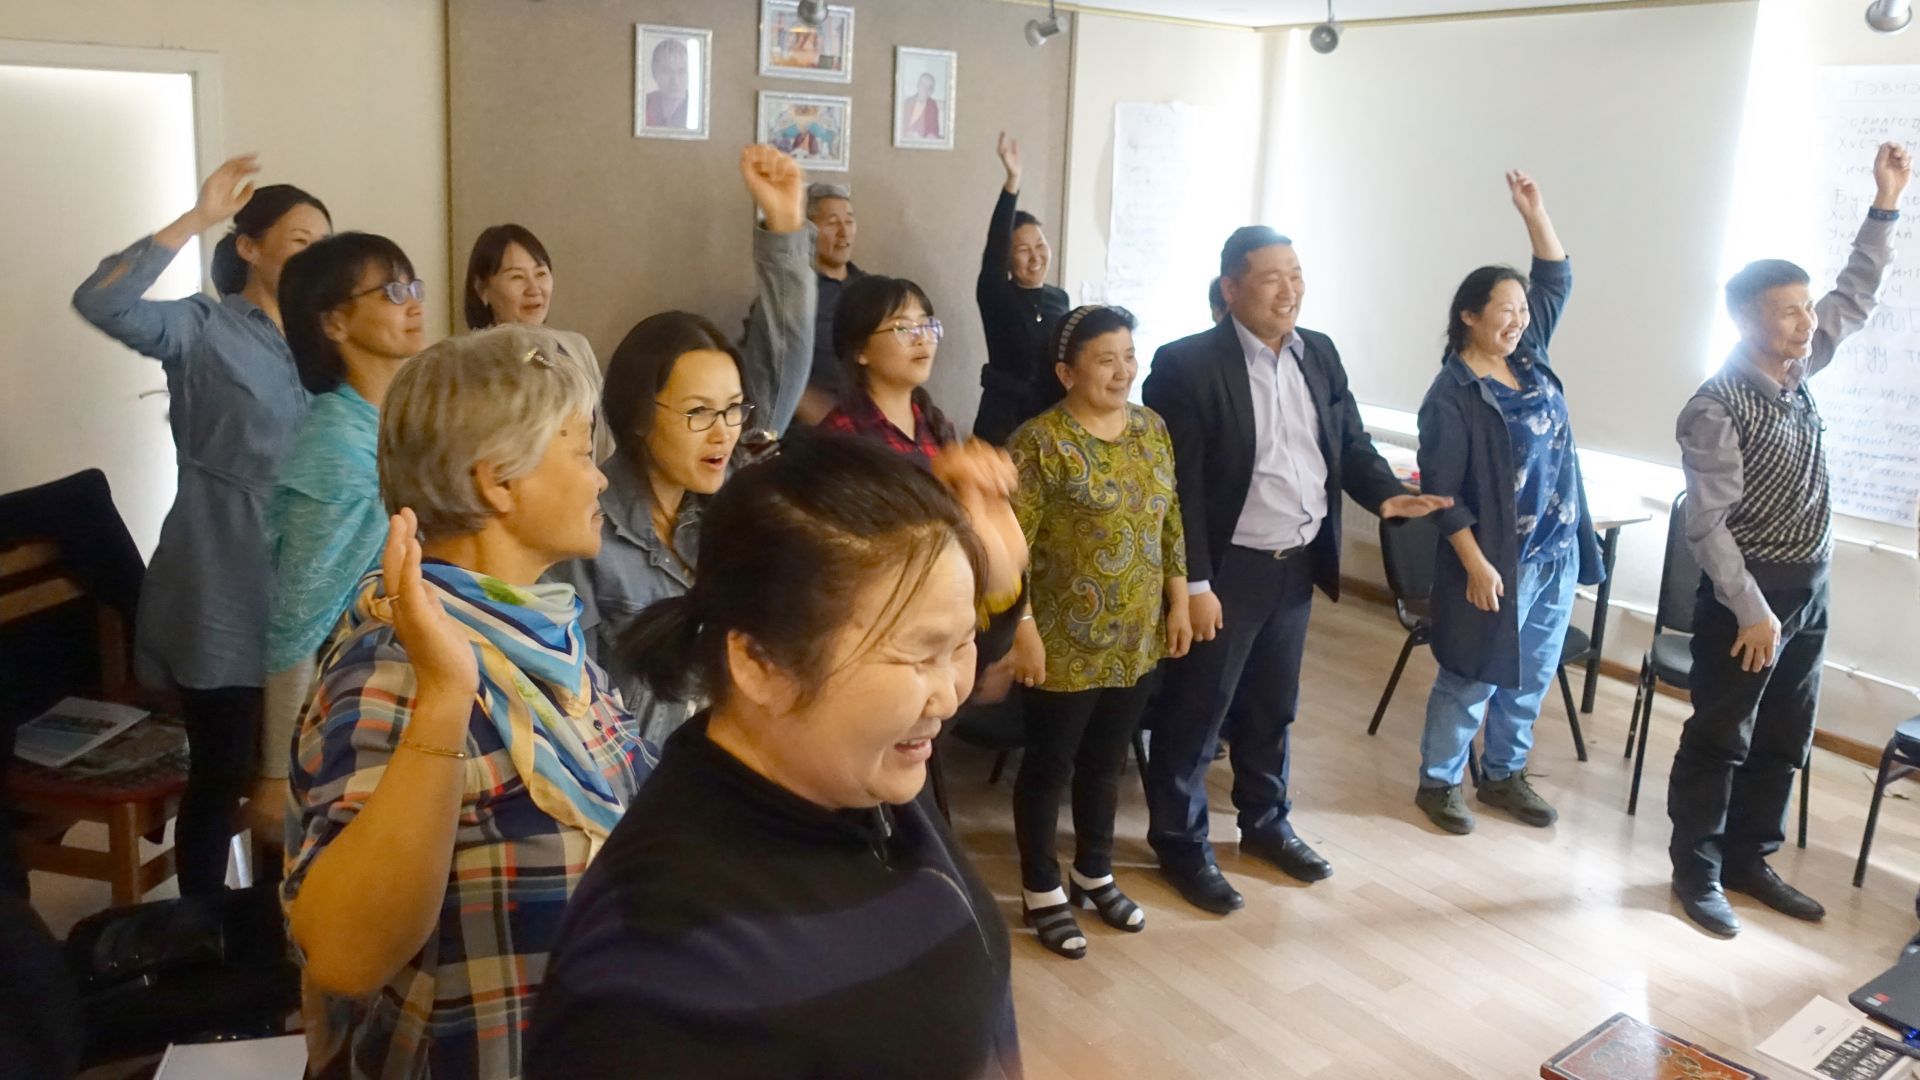 Ganden Do Ngag Shedrup Ling Offered 16 Guidelines for Life Workshop